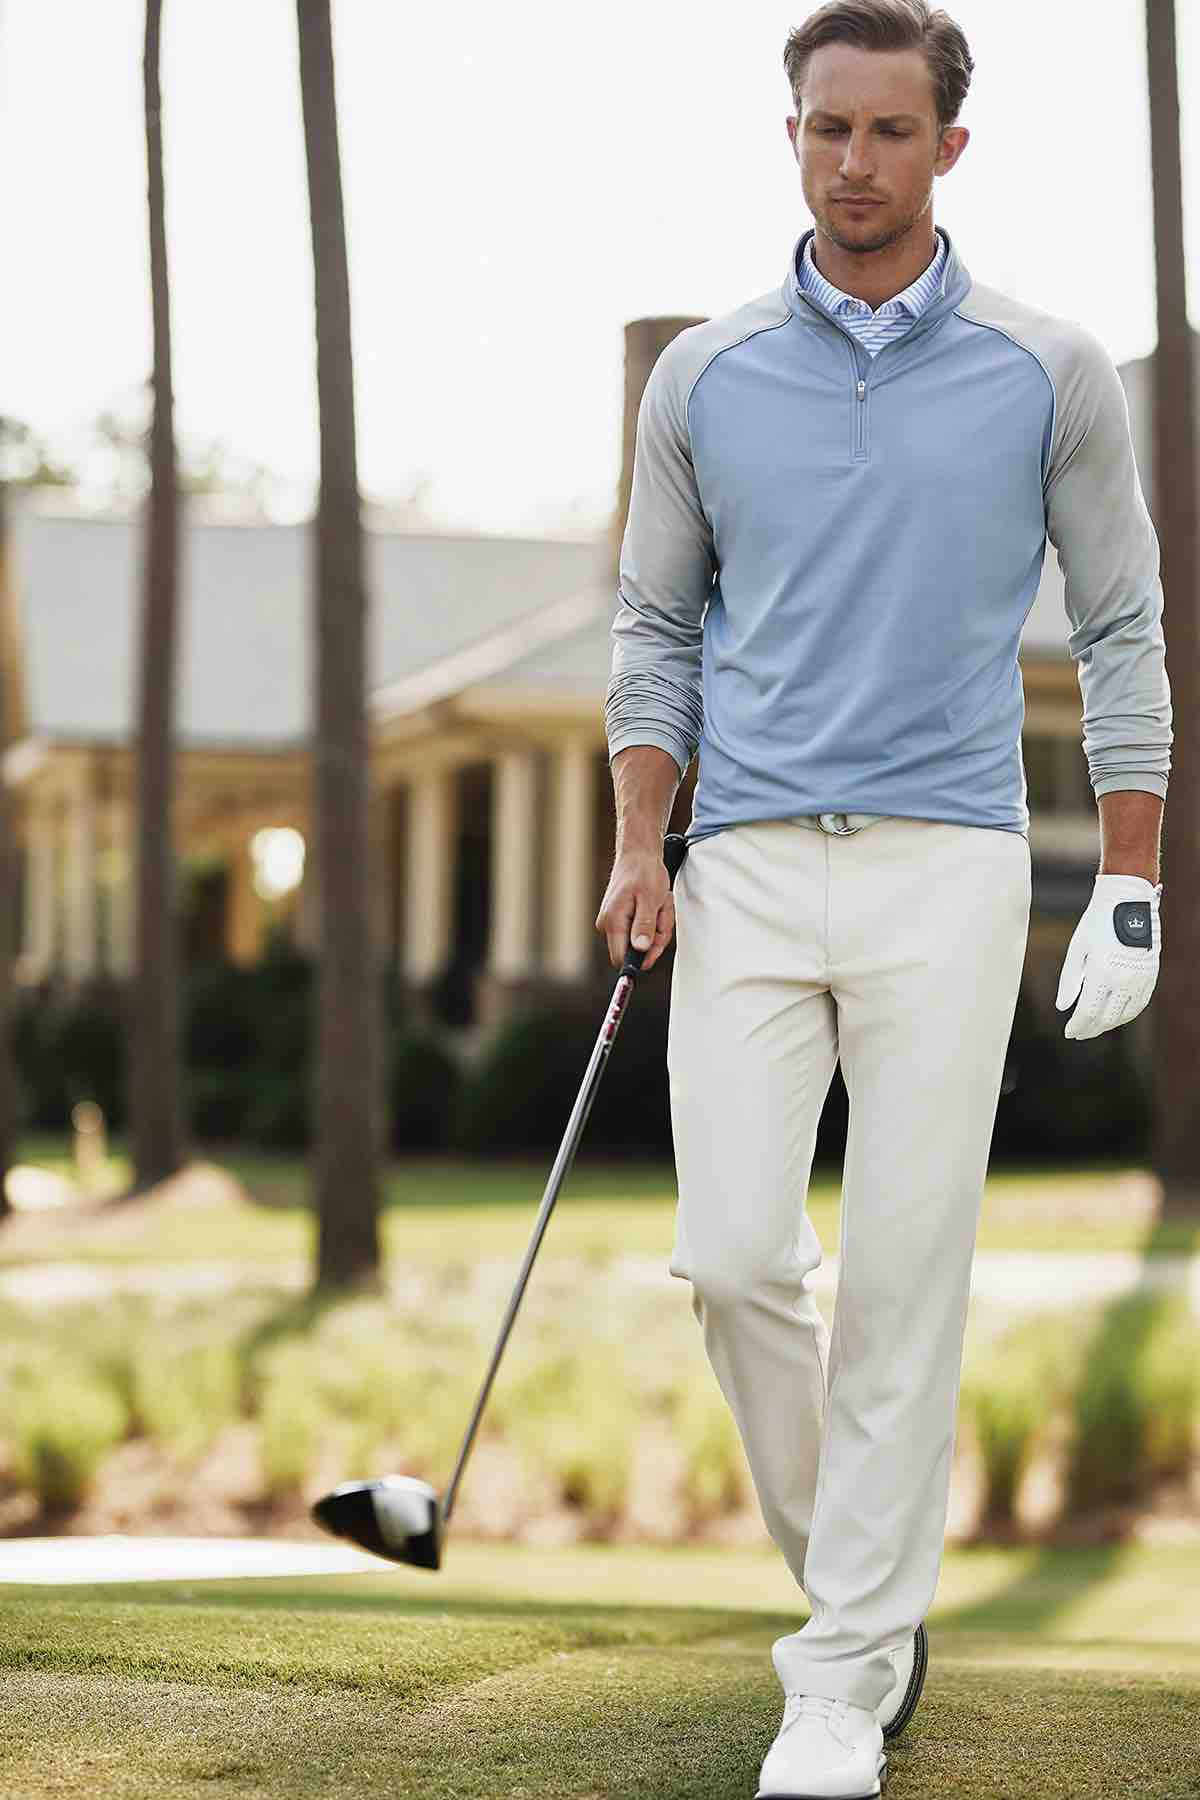 Shop sophisticated style and Performance with Peter Millar